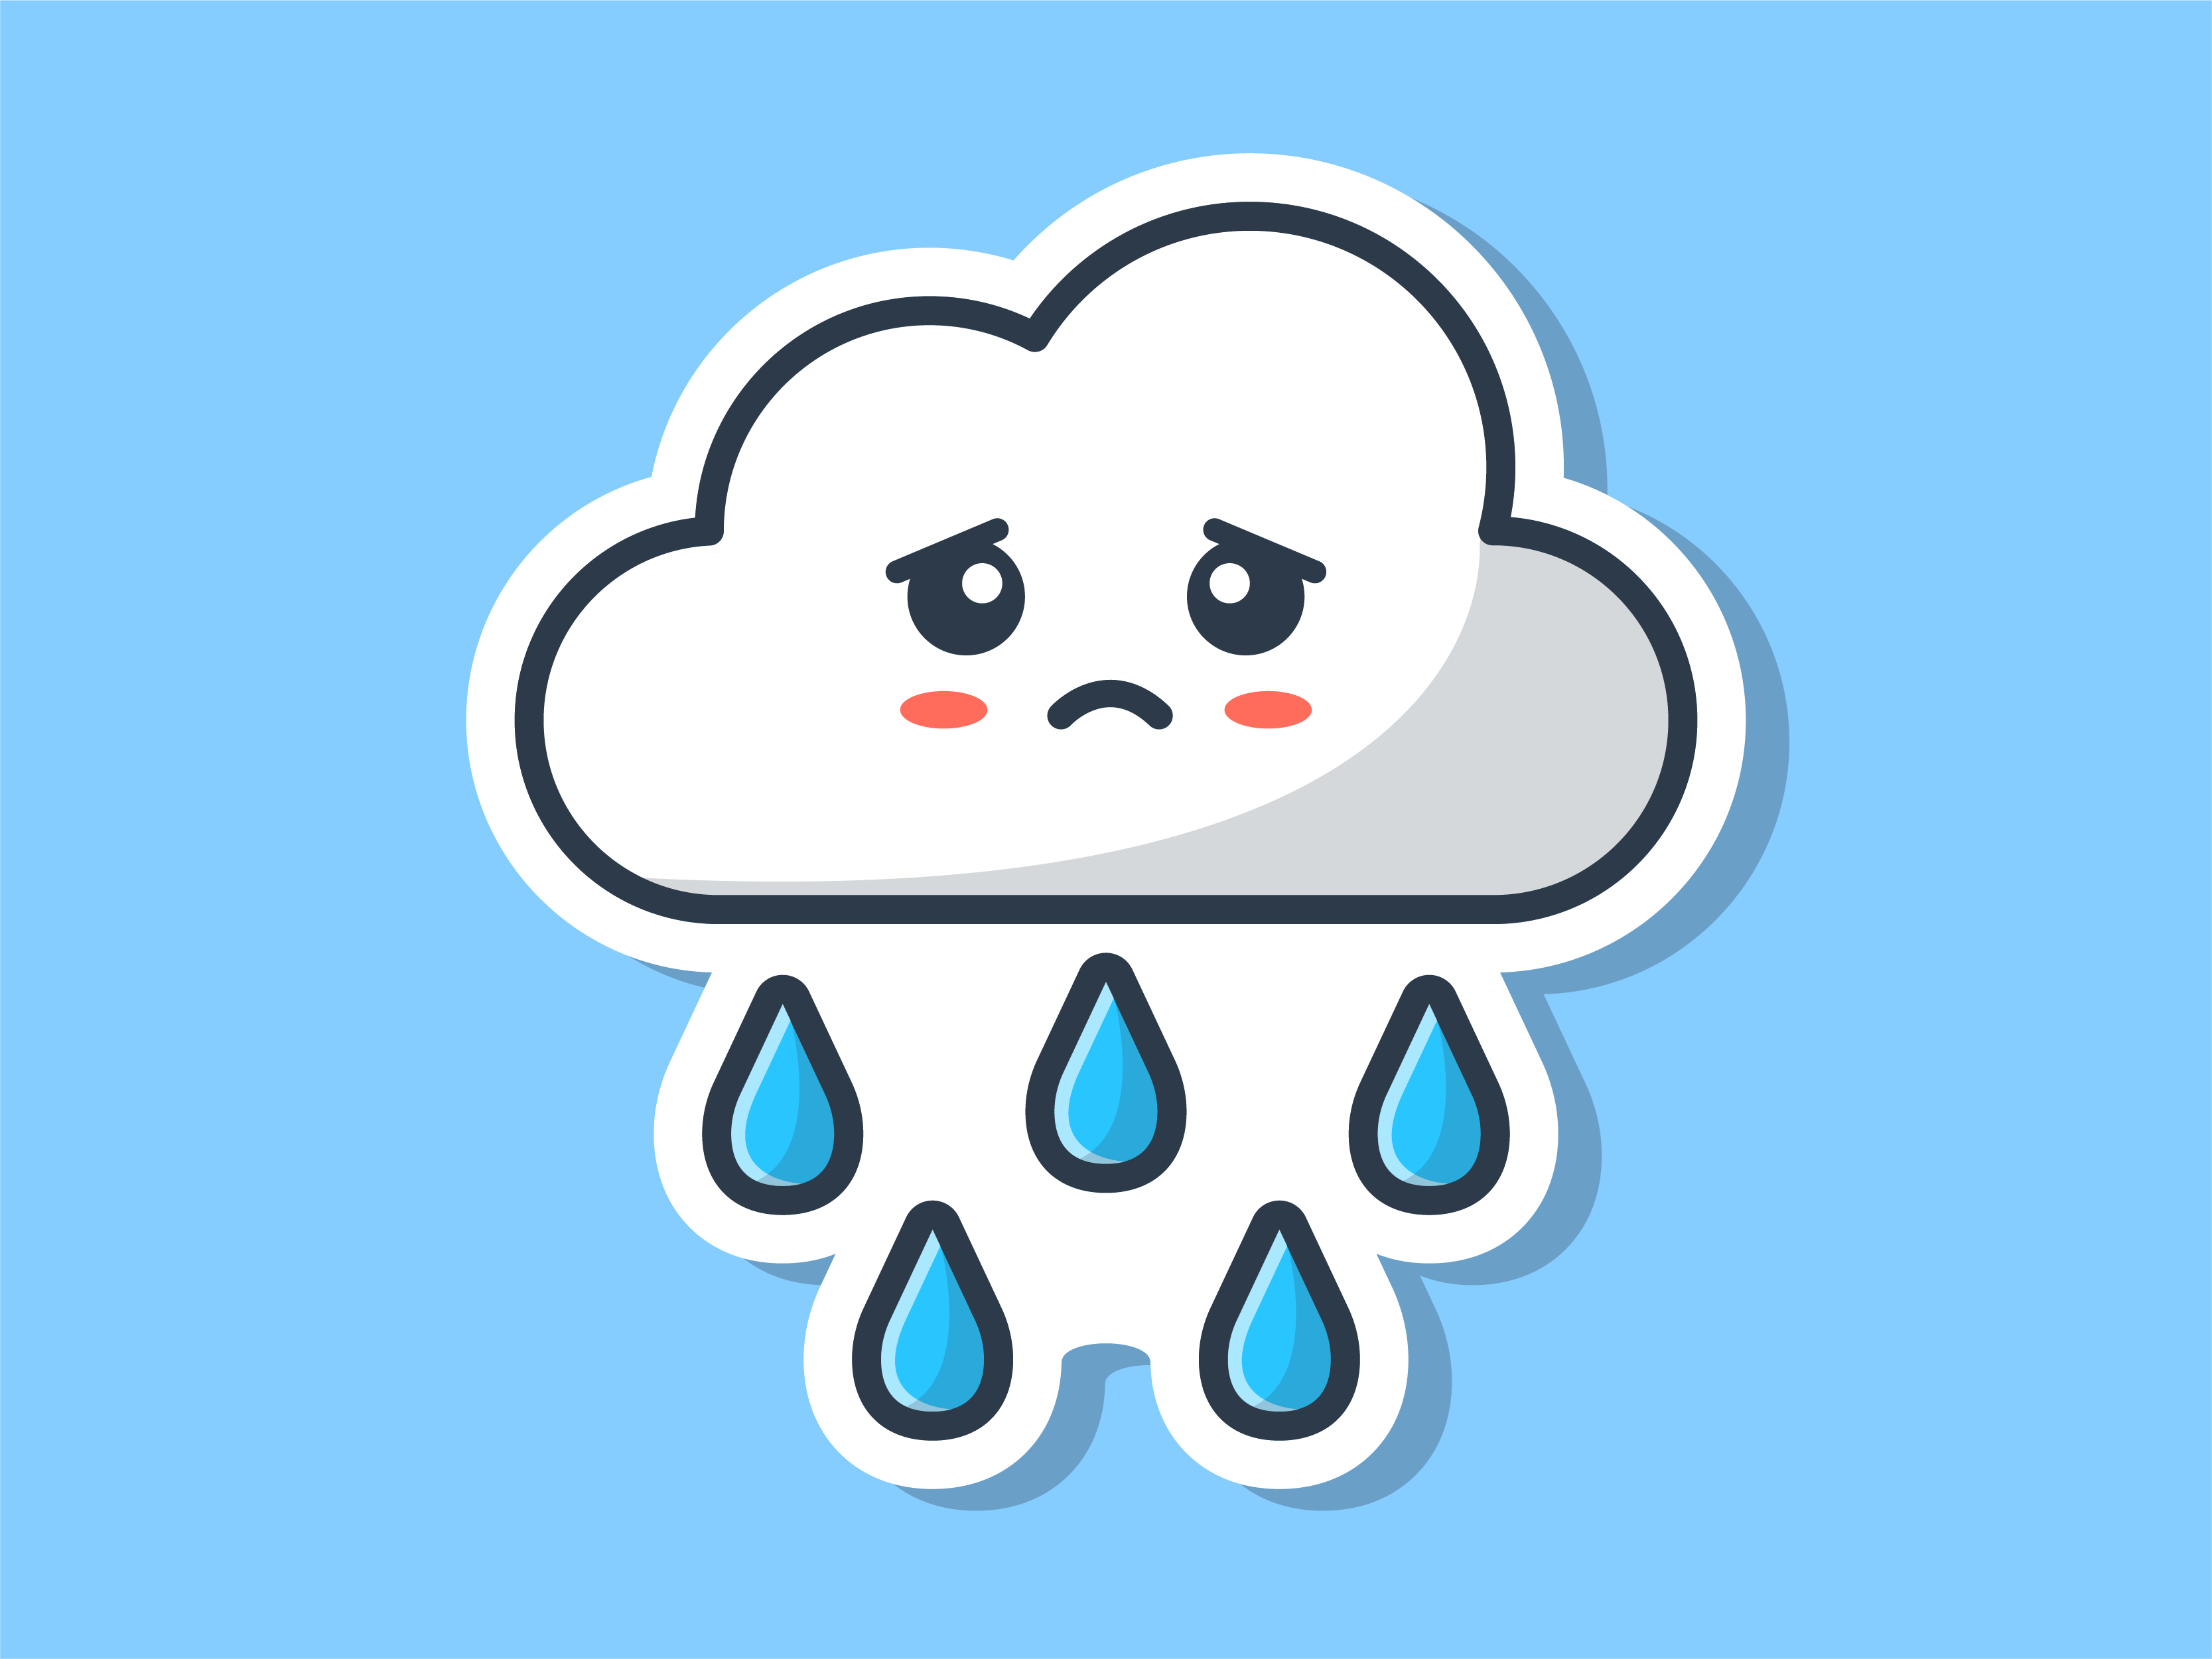 Clouds dribbble 03